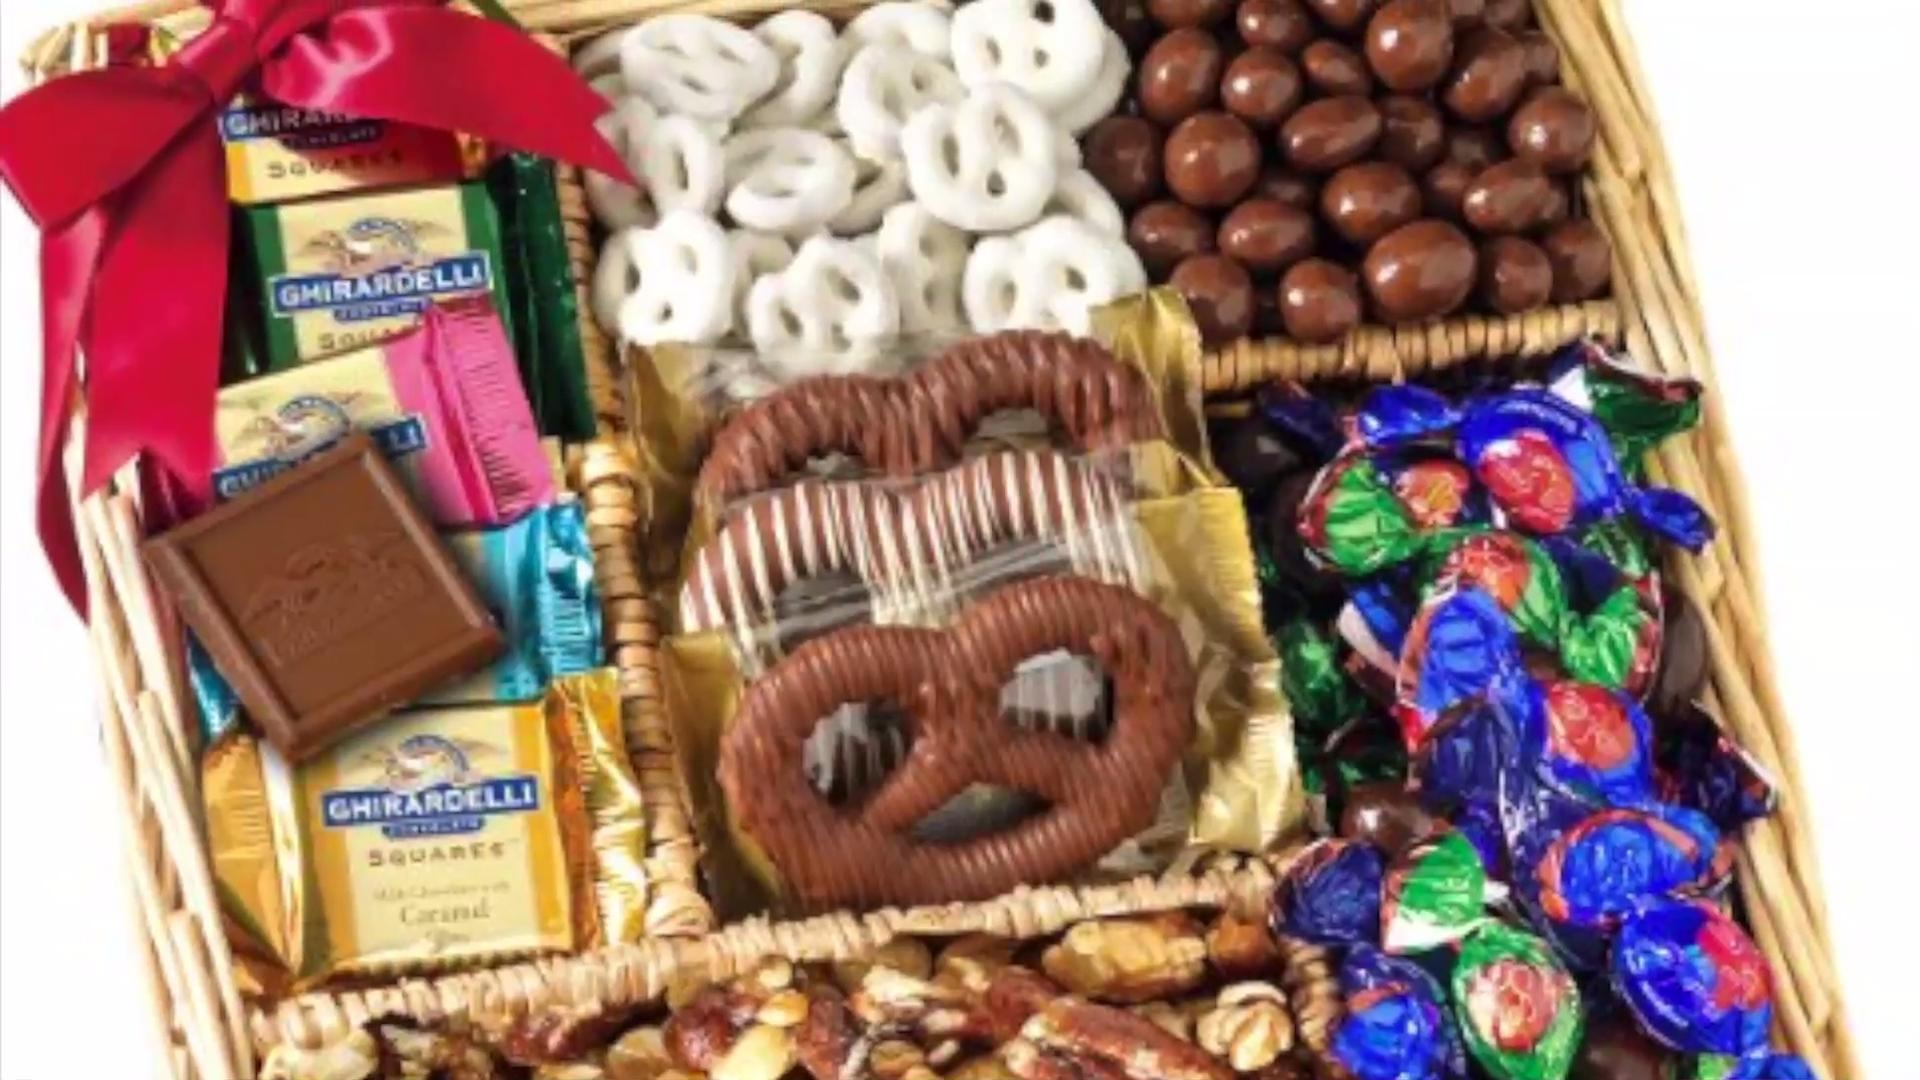 The Best Edible Holiday Gifts